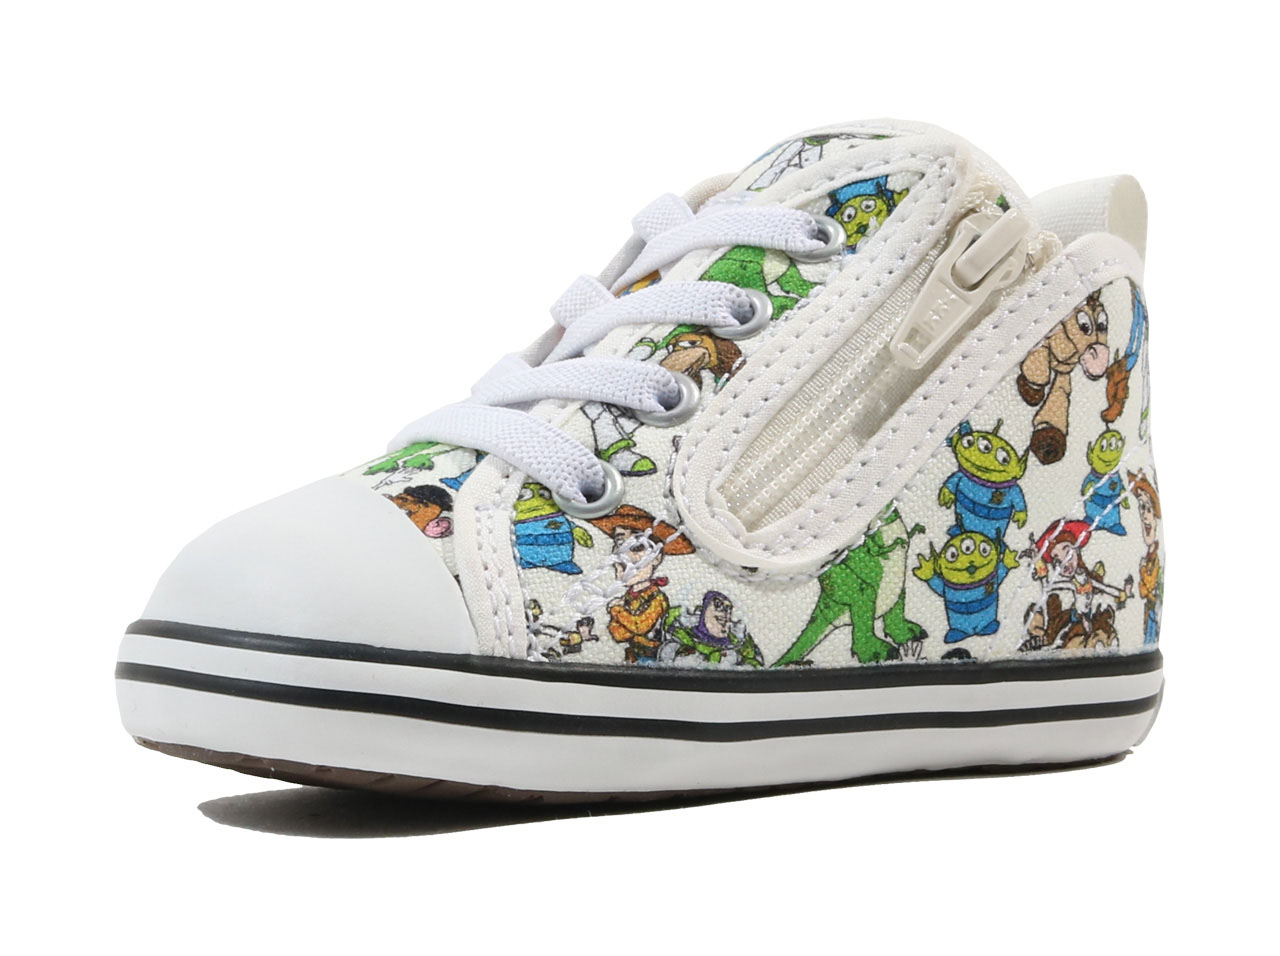 convers_baby_all_star_n_toy_story_pt_z_32712780